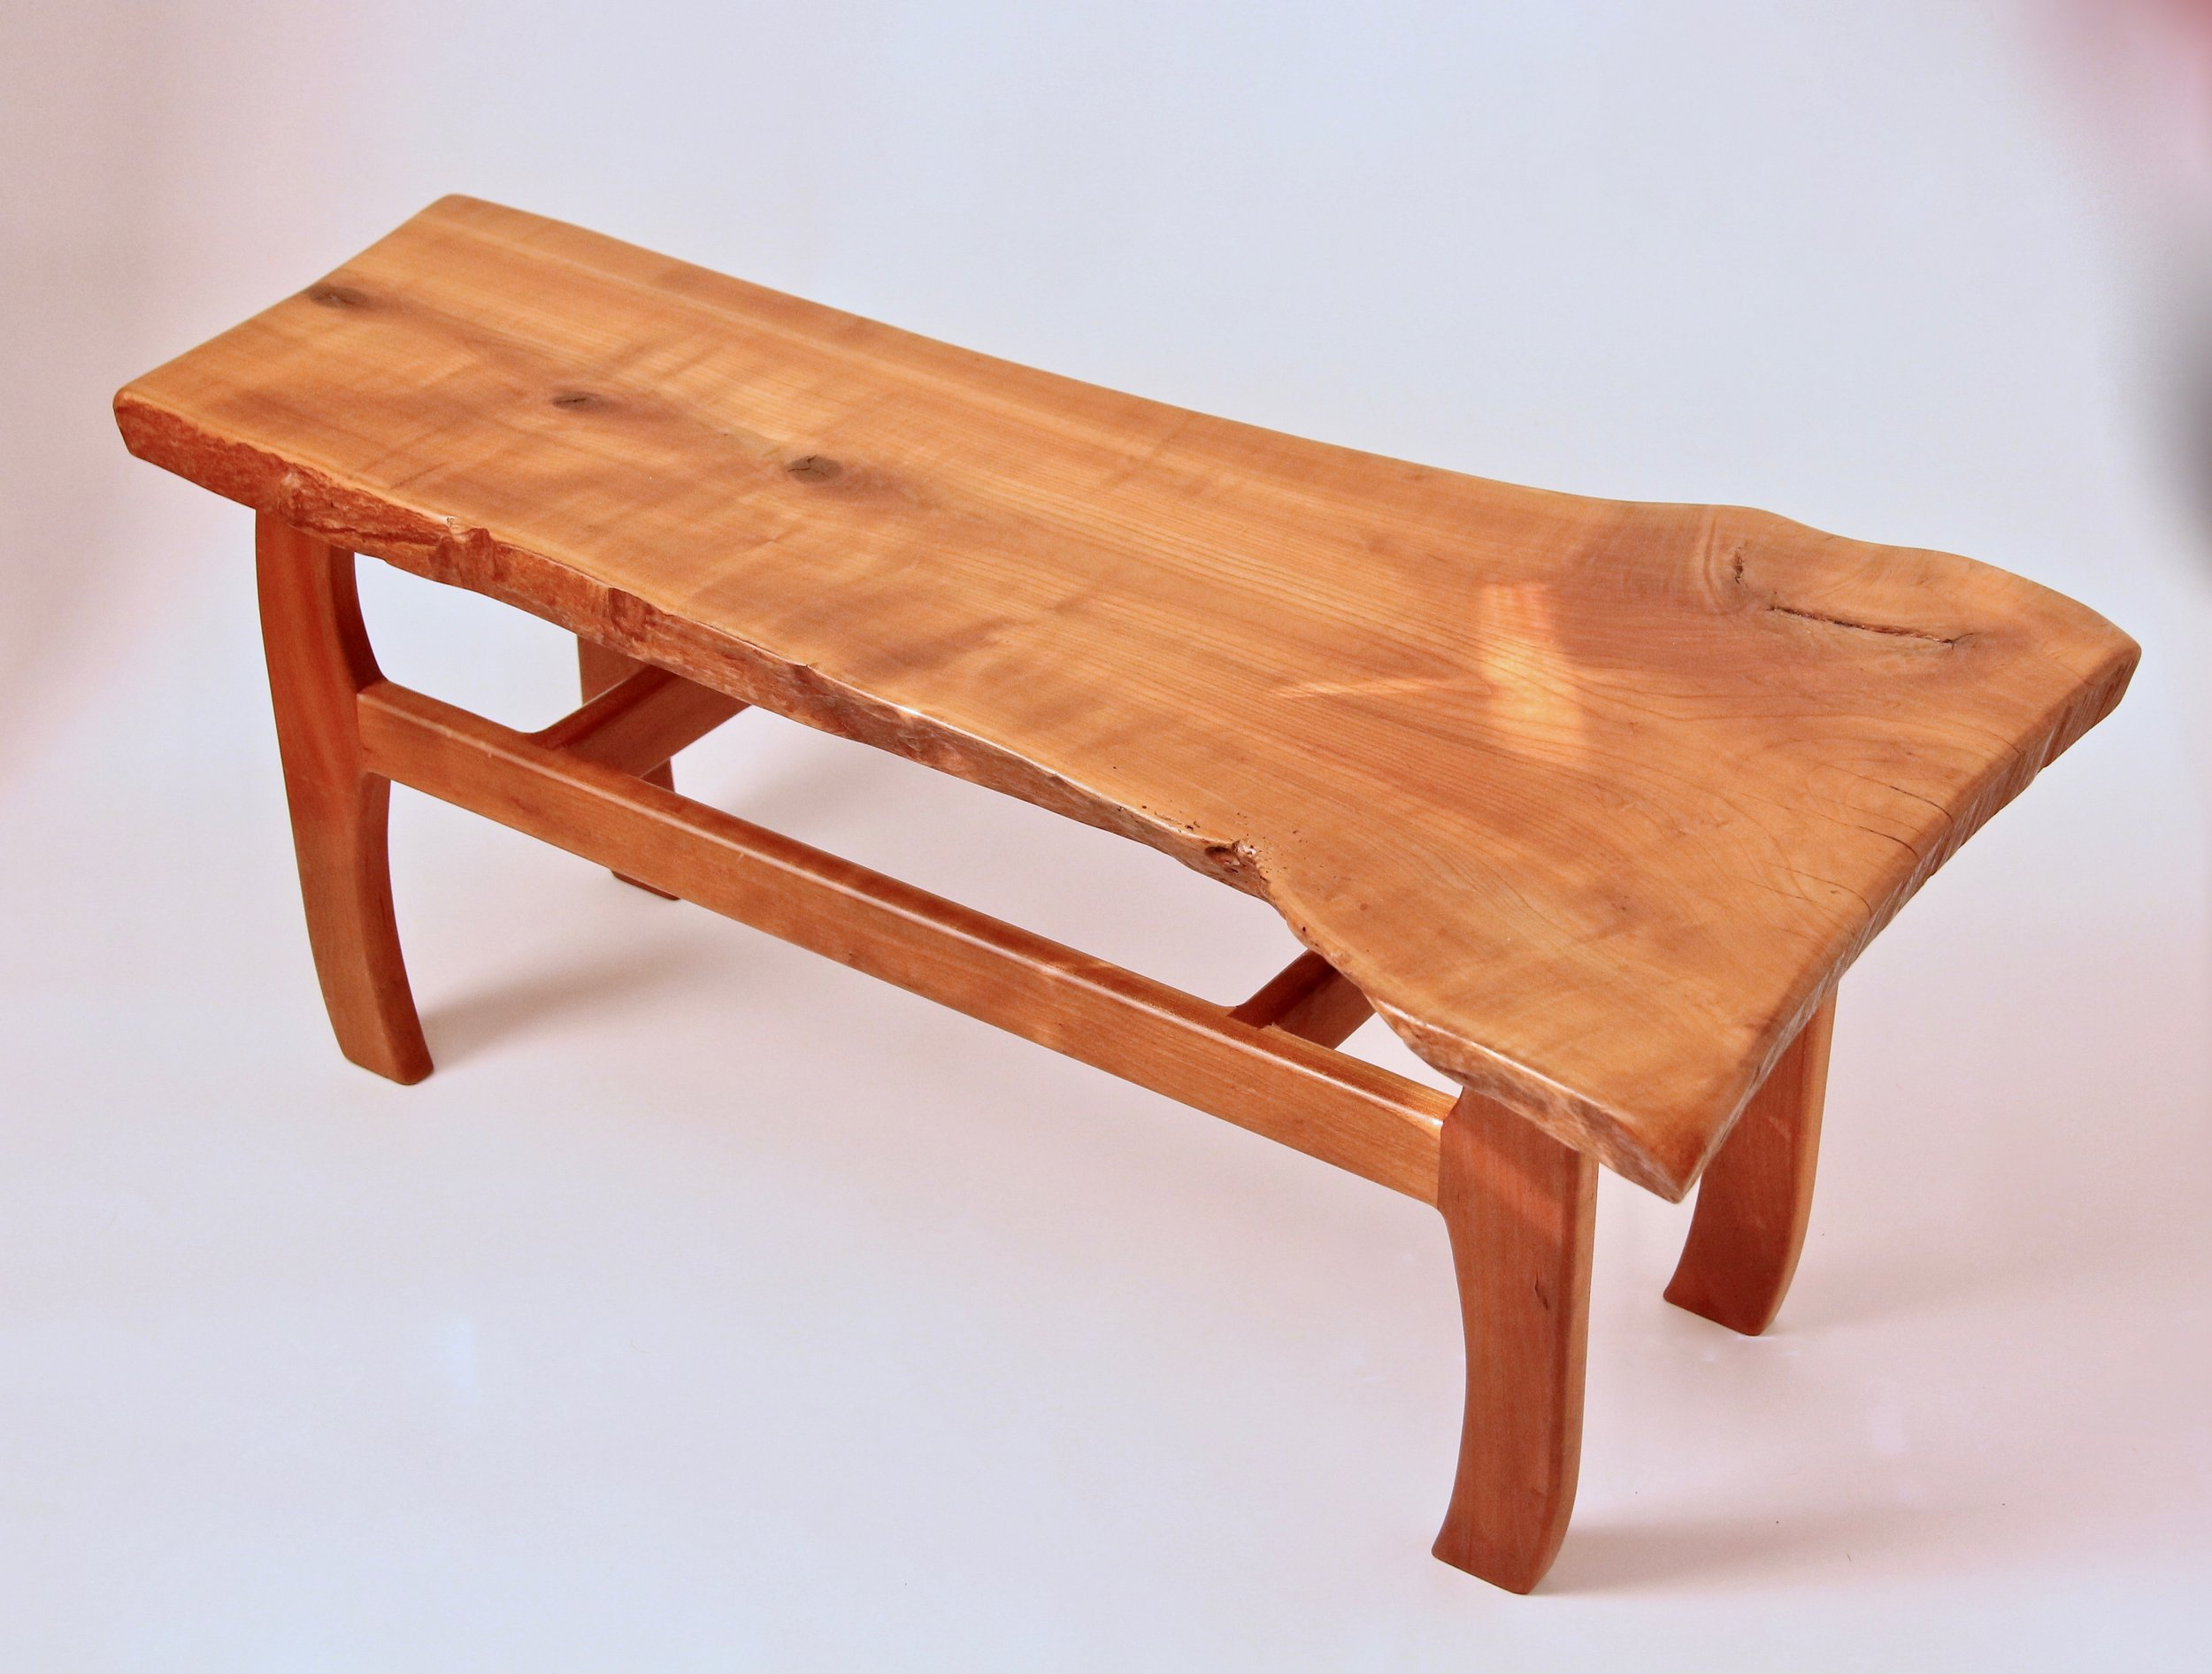 Black Cherry Coffee Table (view 1)